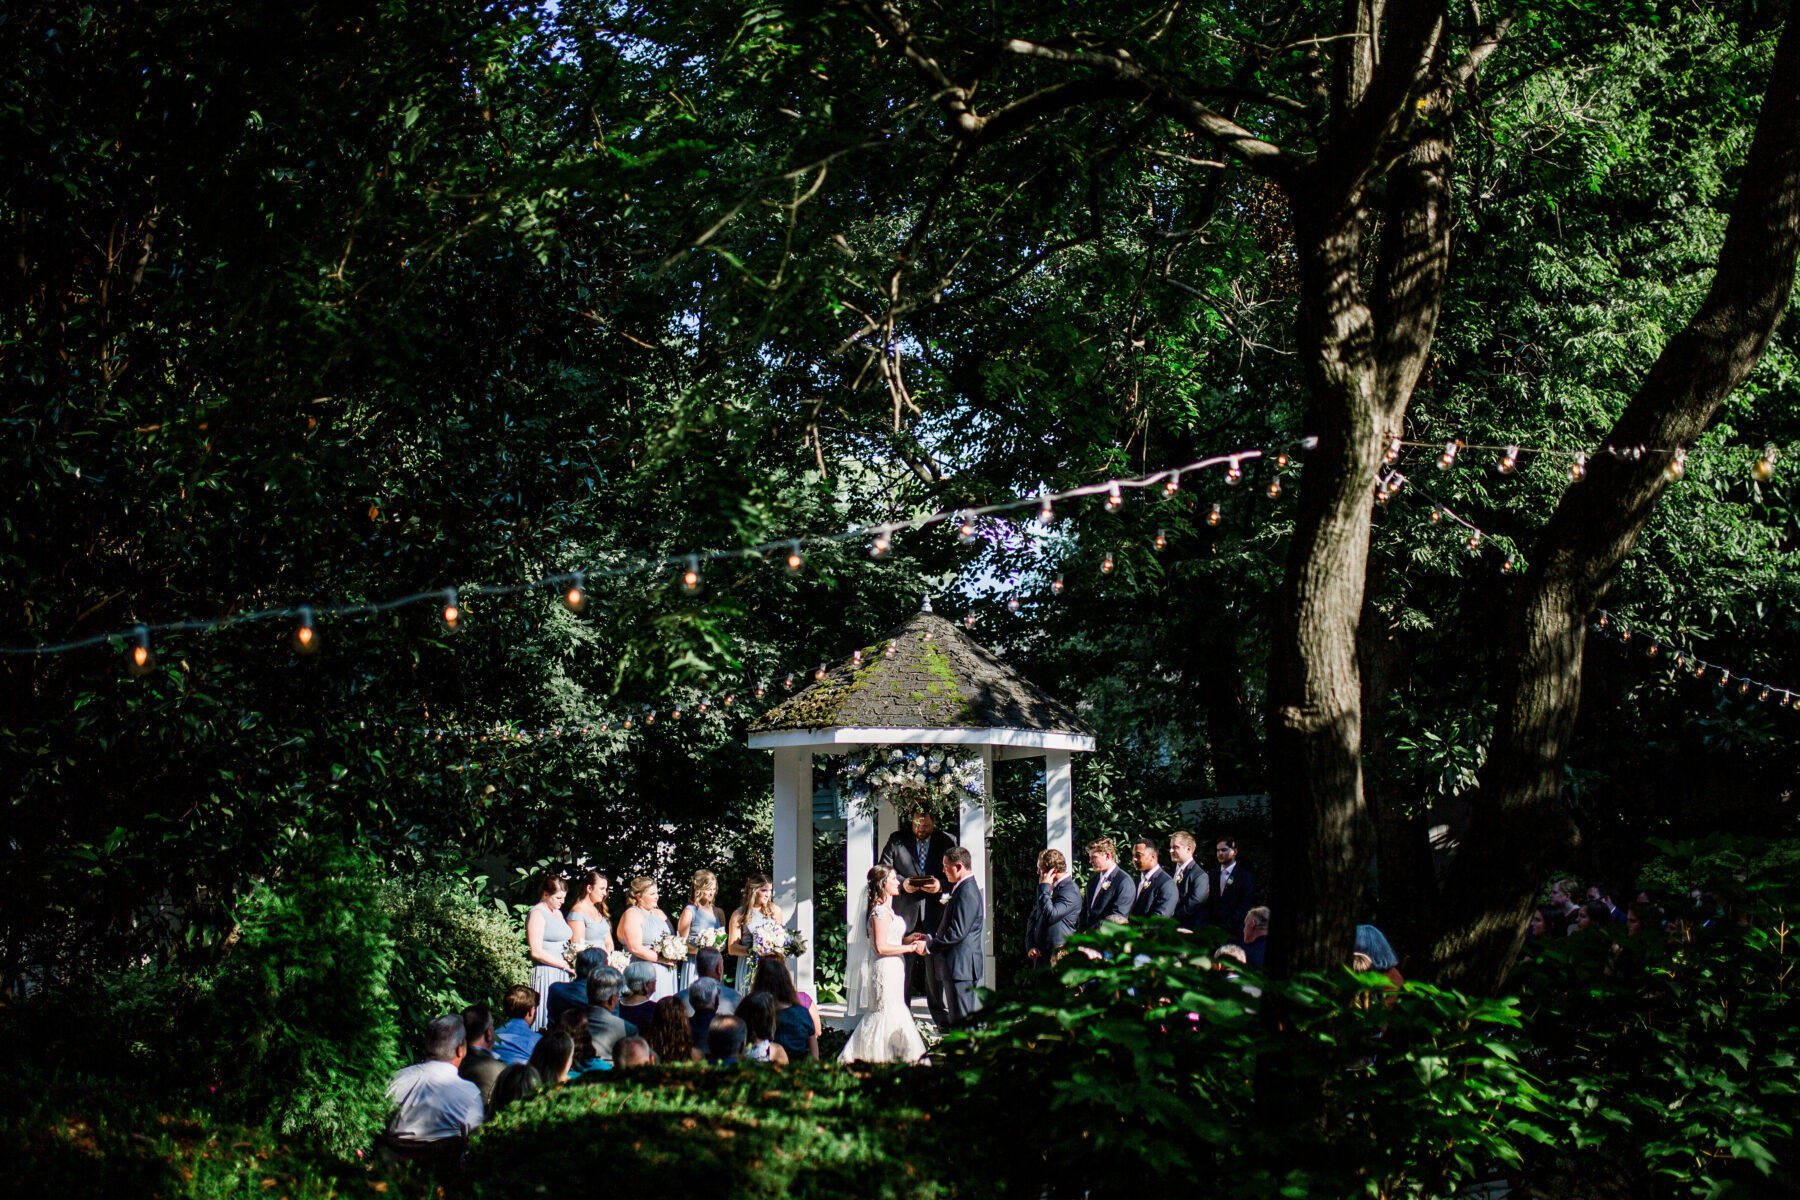 Romantic Garden Wedding at CJ's Off the Square | Nashville Bride Guide